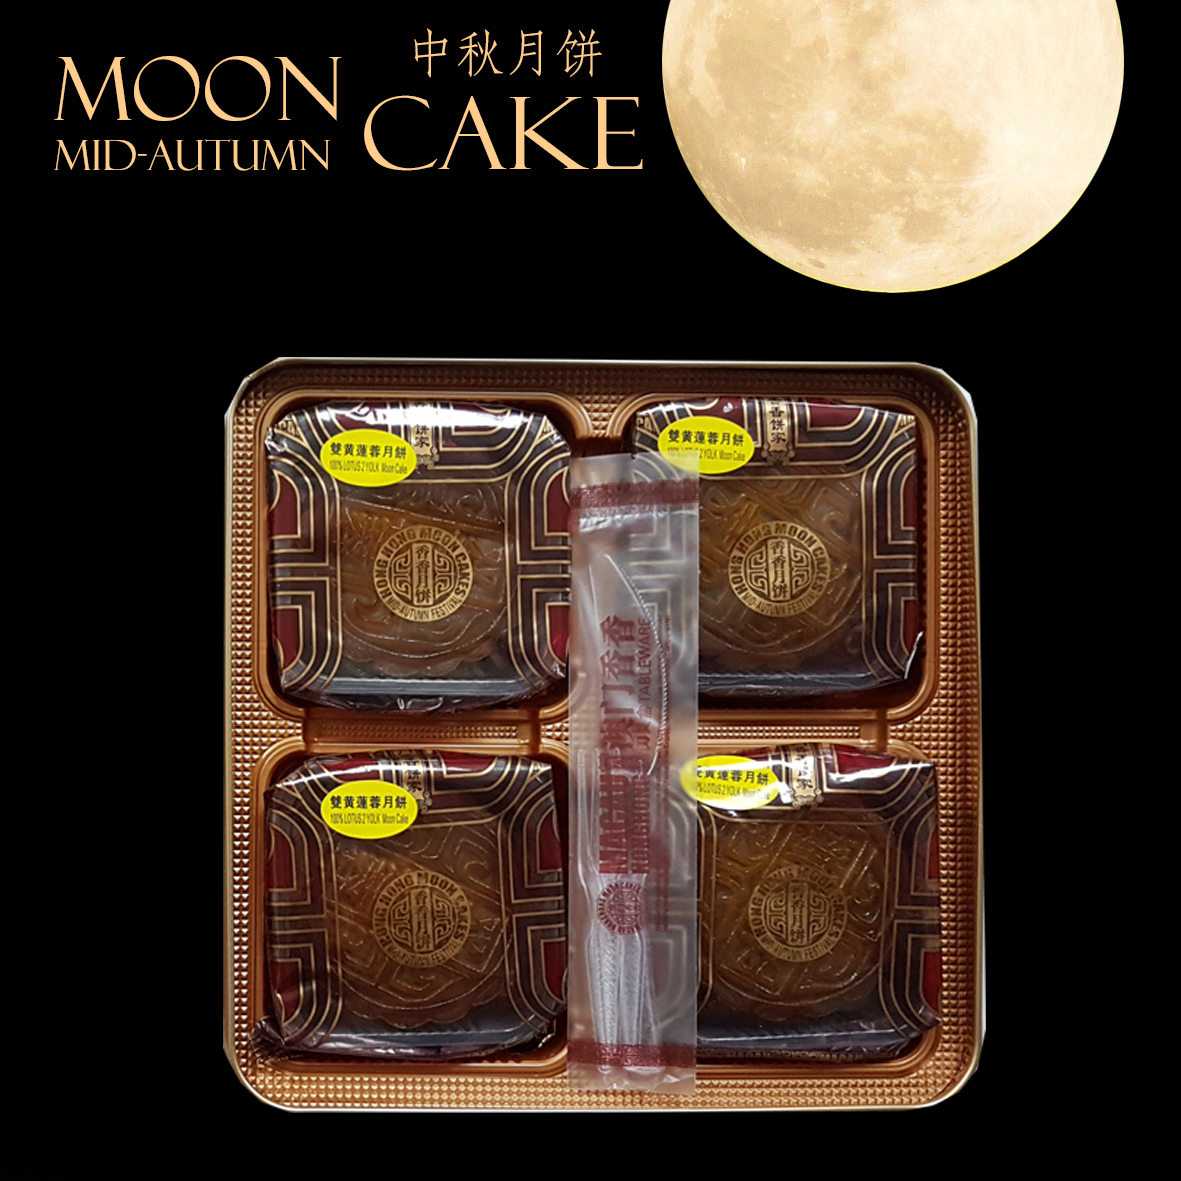 Kanpeki Macau Hong Hong Moon Cake Mid Autumn 100 percent lotus 2 yolk MoonCake 2.jpg